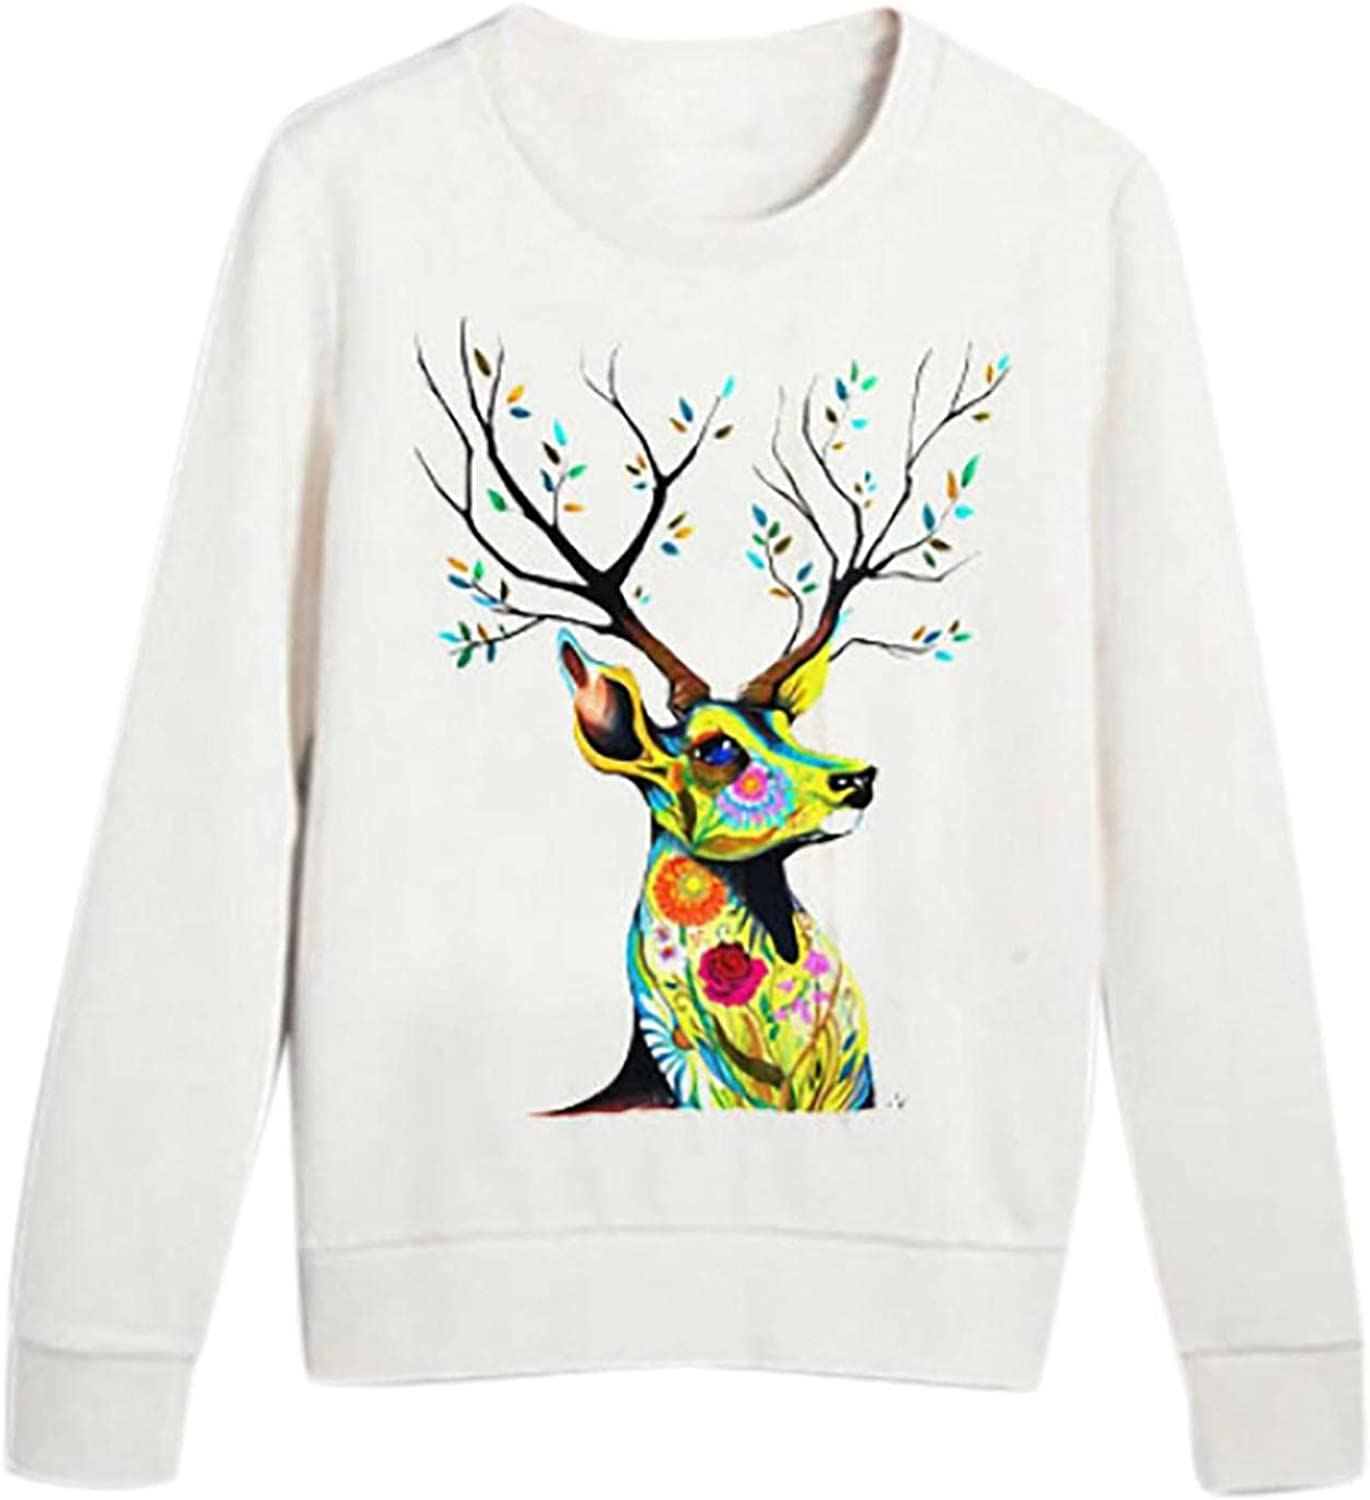 New World Animal Day Theme Tops for Ladies Crewneck Long Sleeves Pullover Print Pattern Sweatshirts